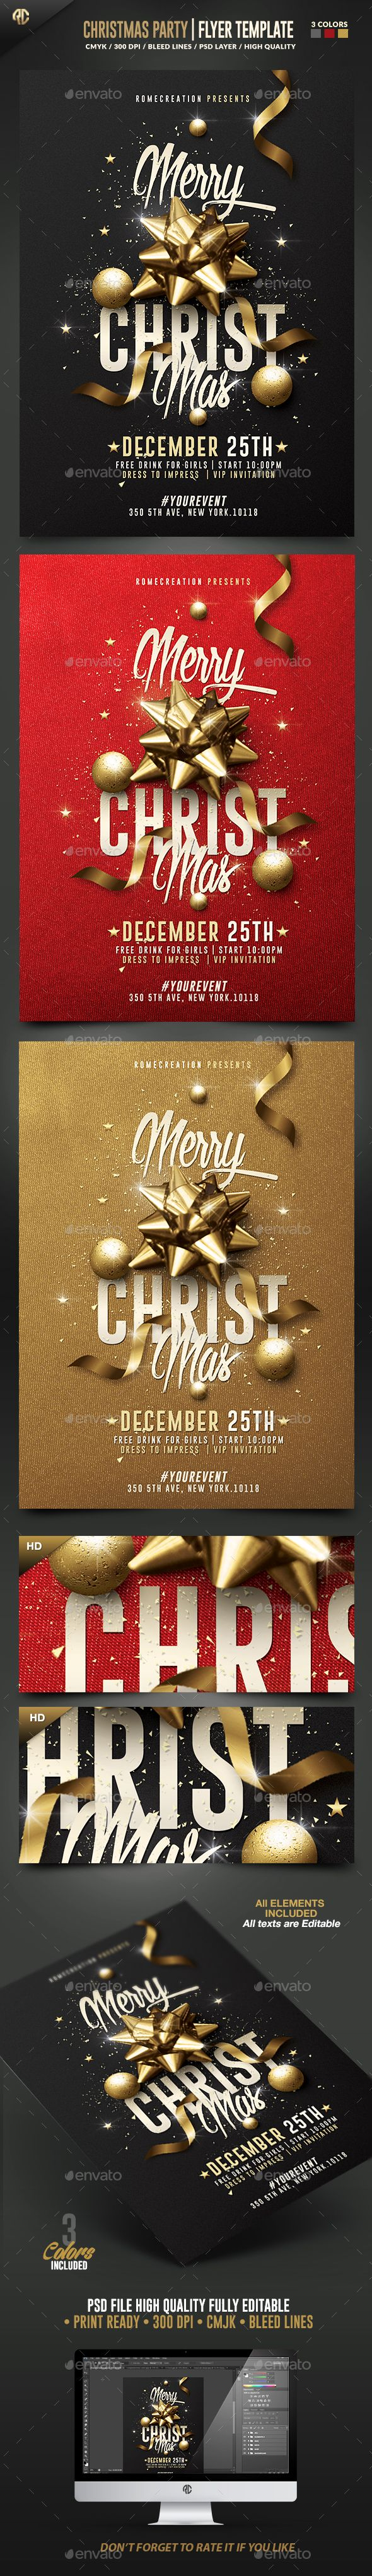 Best 25 Christmas graphic design ideas on Pinterest